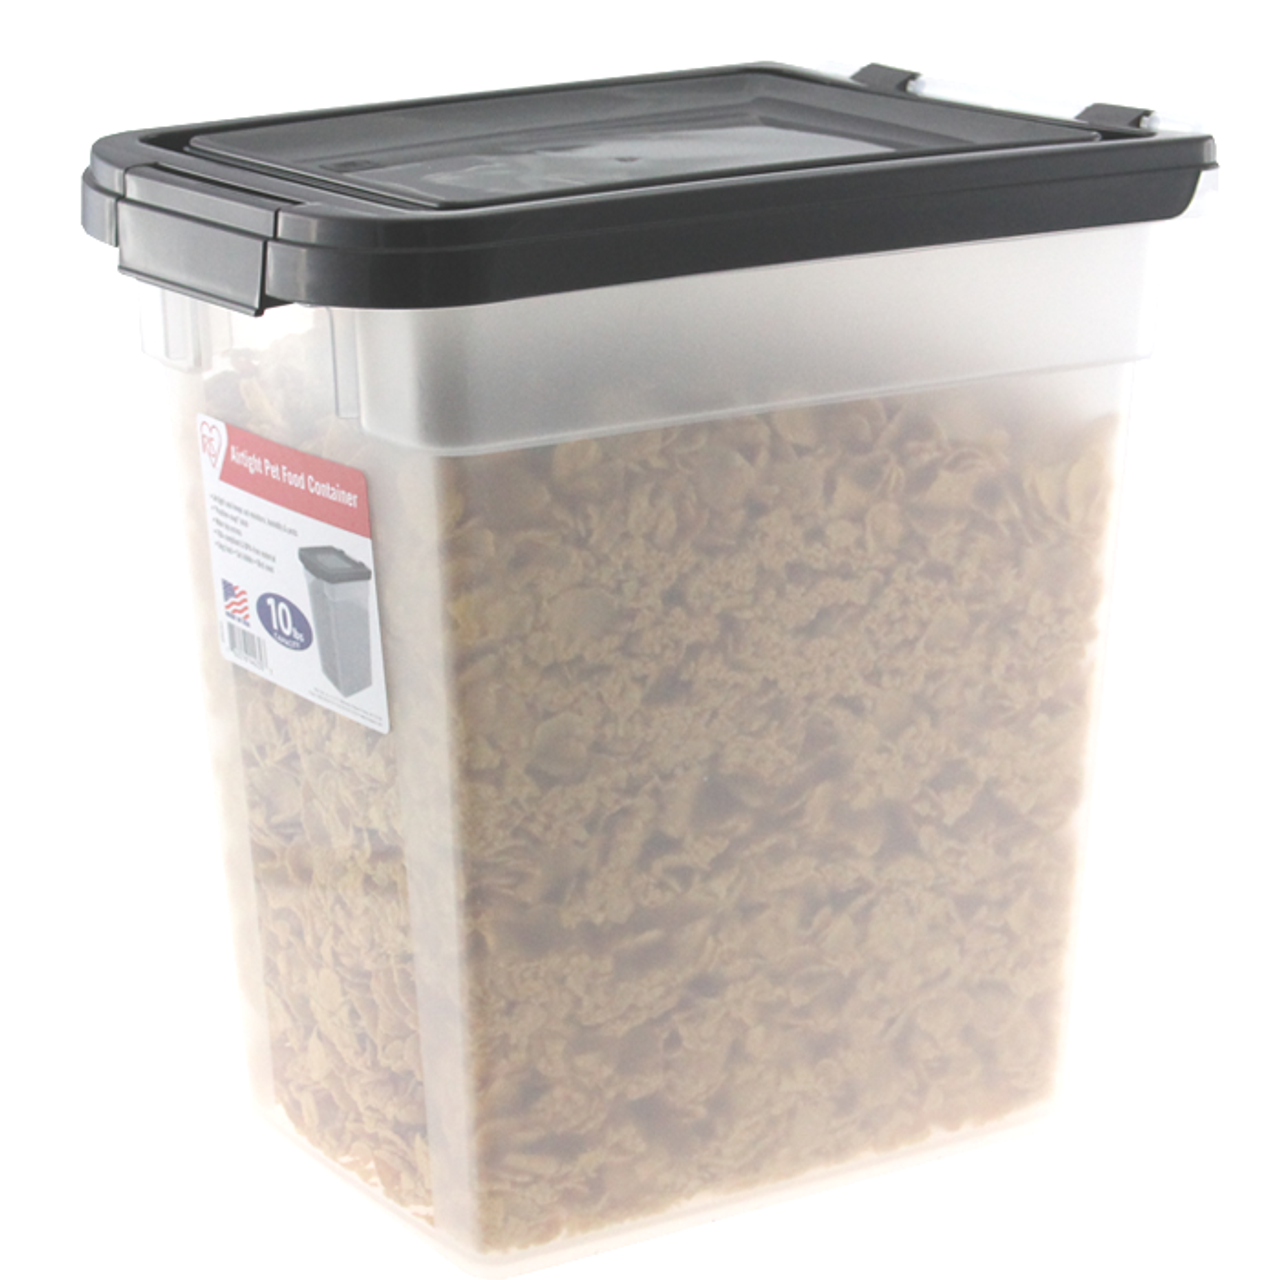 Airtight Storage Container 12 75qt / 14L